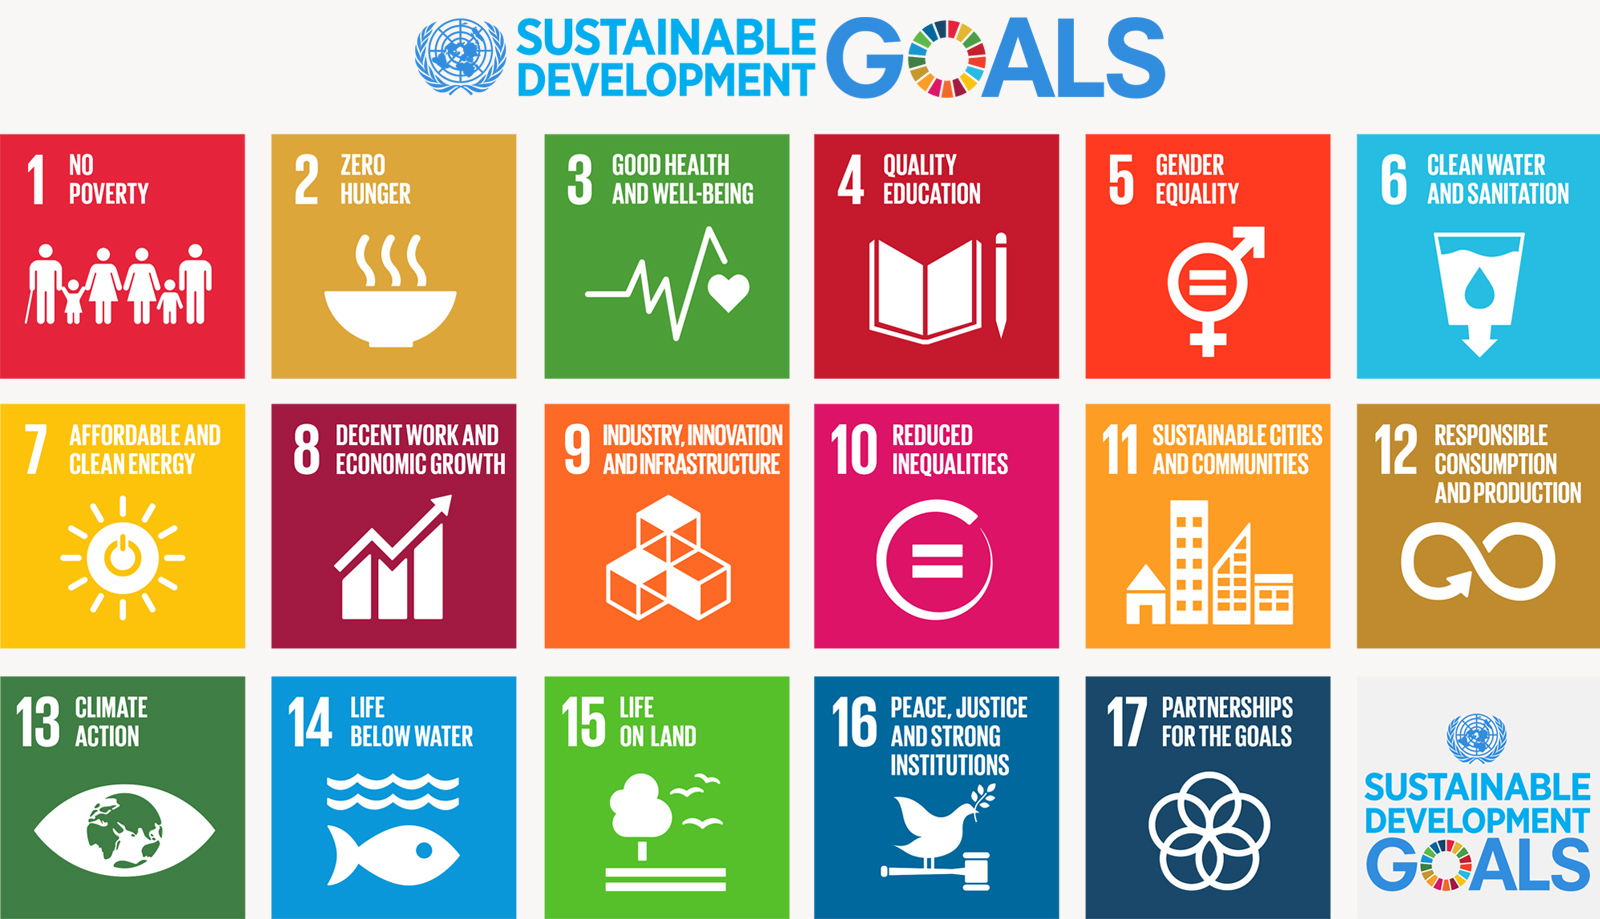 Full list of 17 Sustainable Development Goals